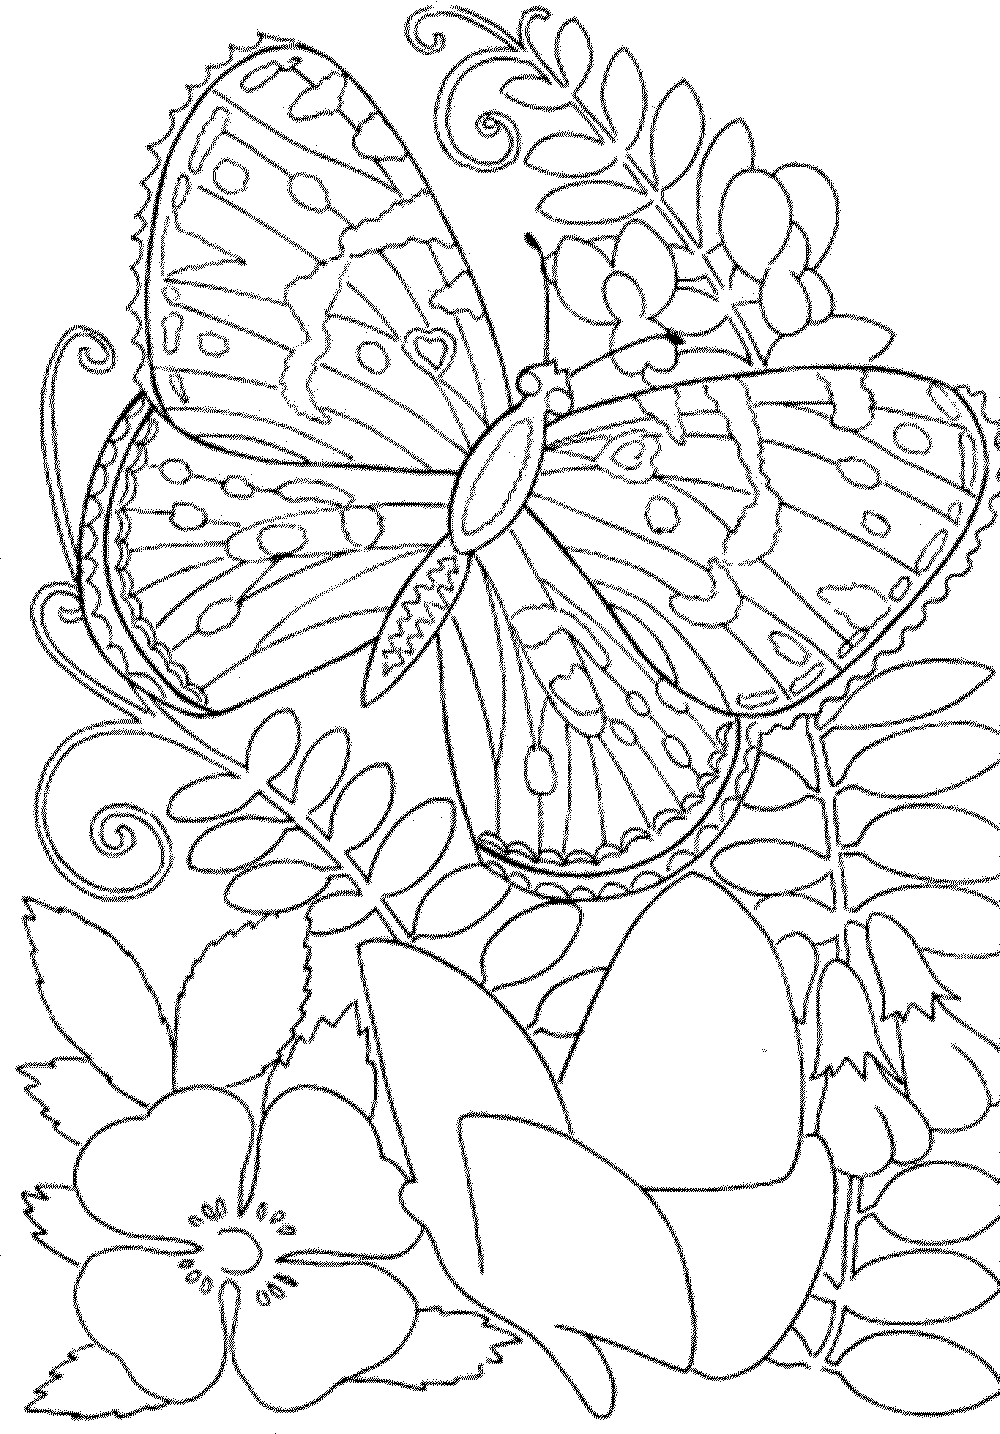 coloring pages for adults free printable - Detailed Coloring Pages For Kids